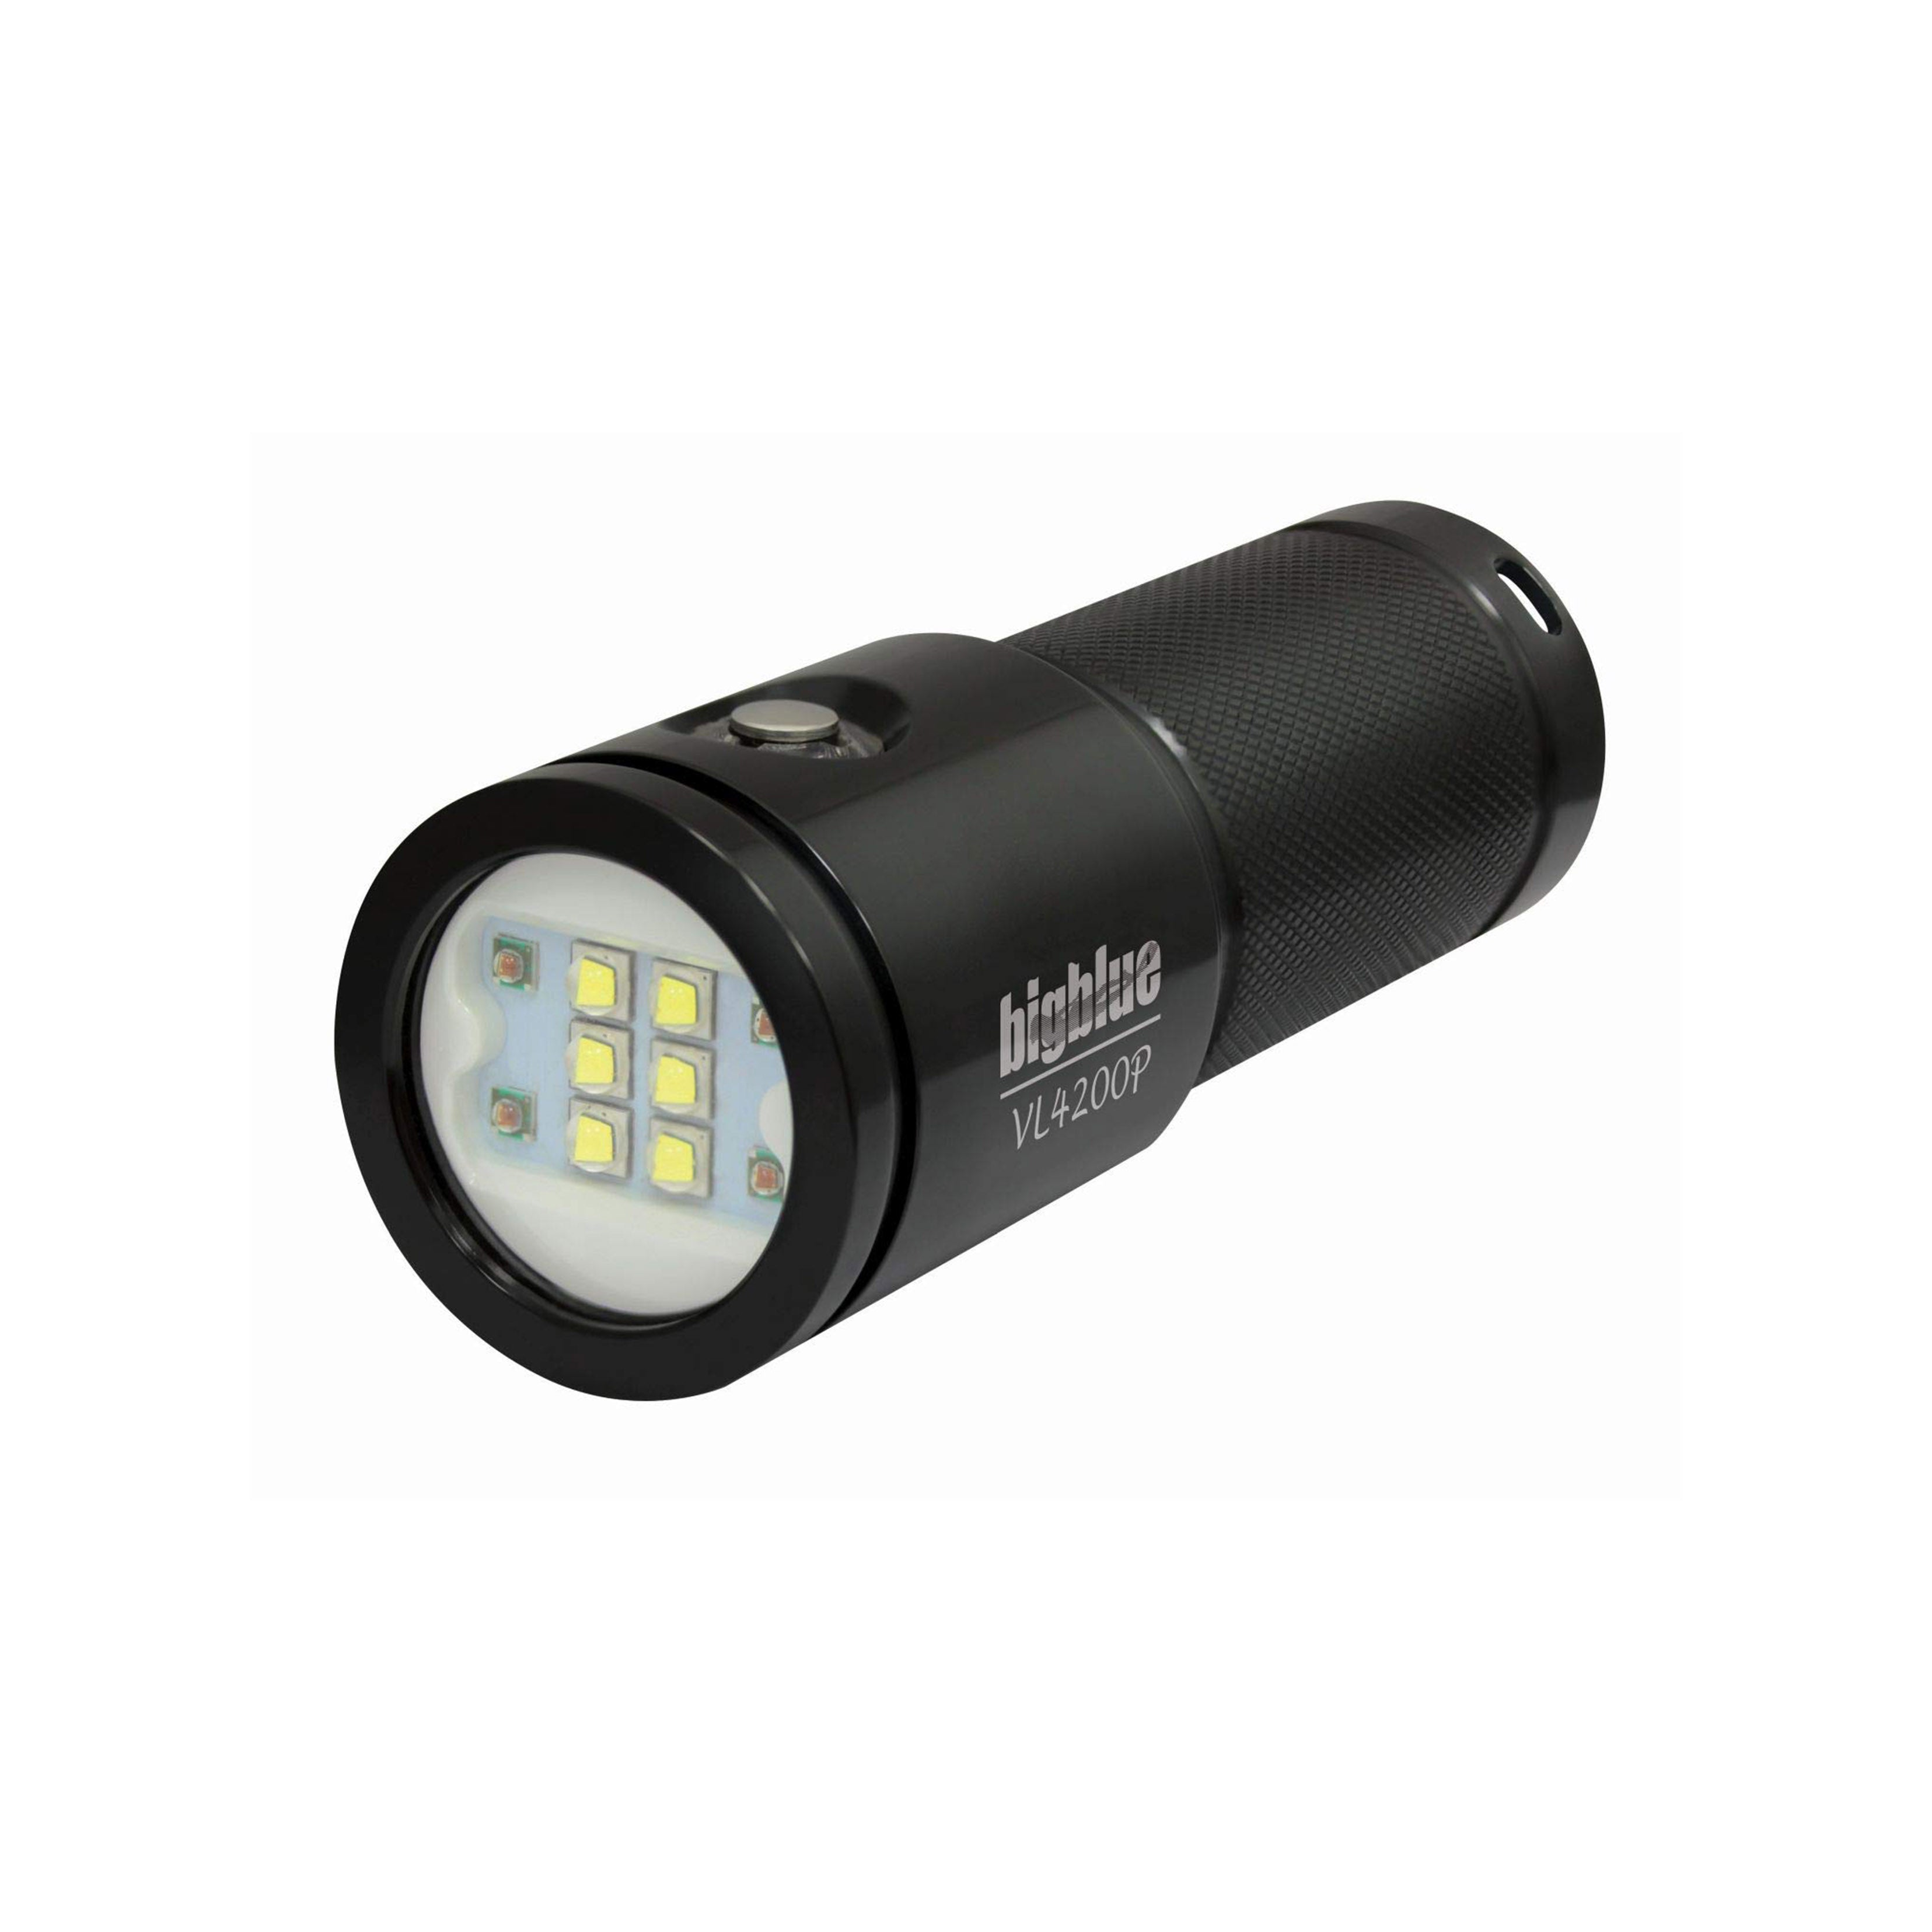 4200LUMENS VIDEO LIGHT